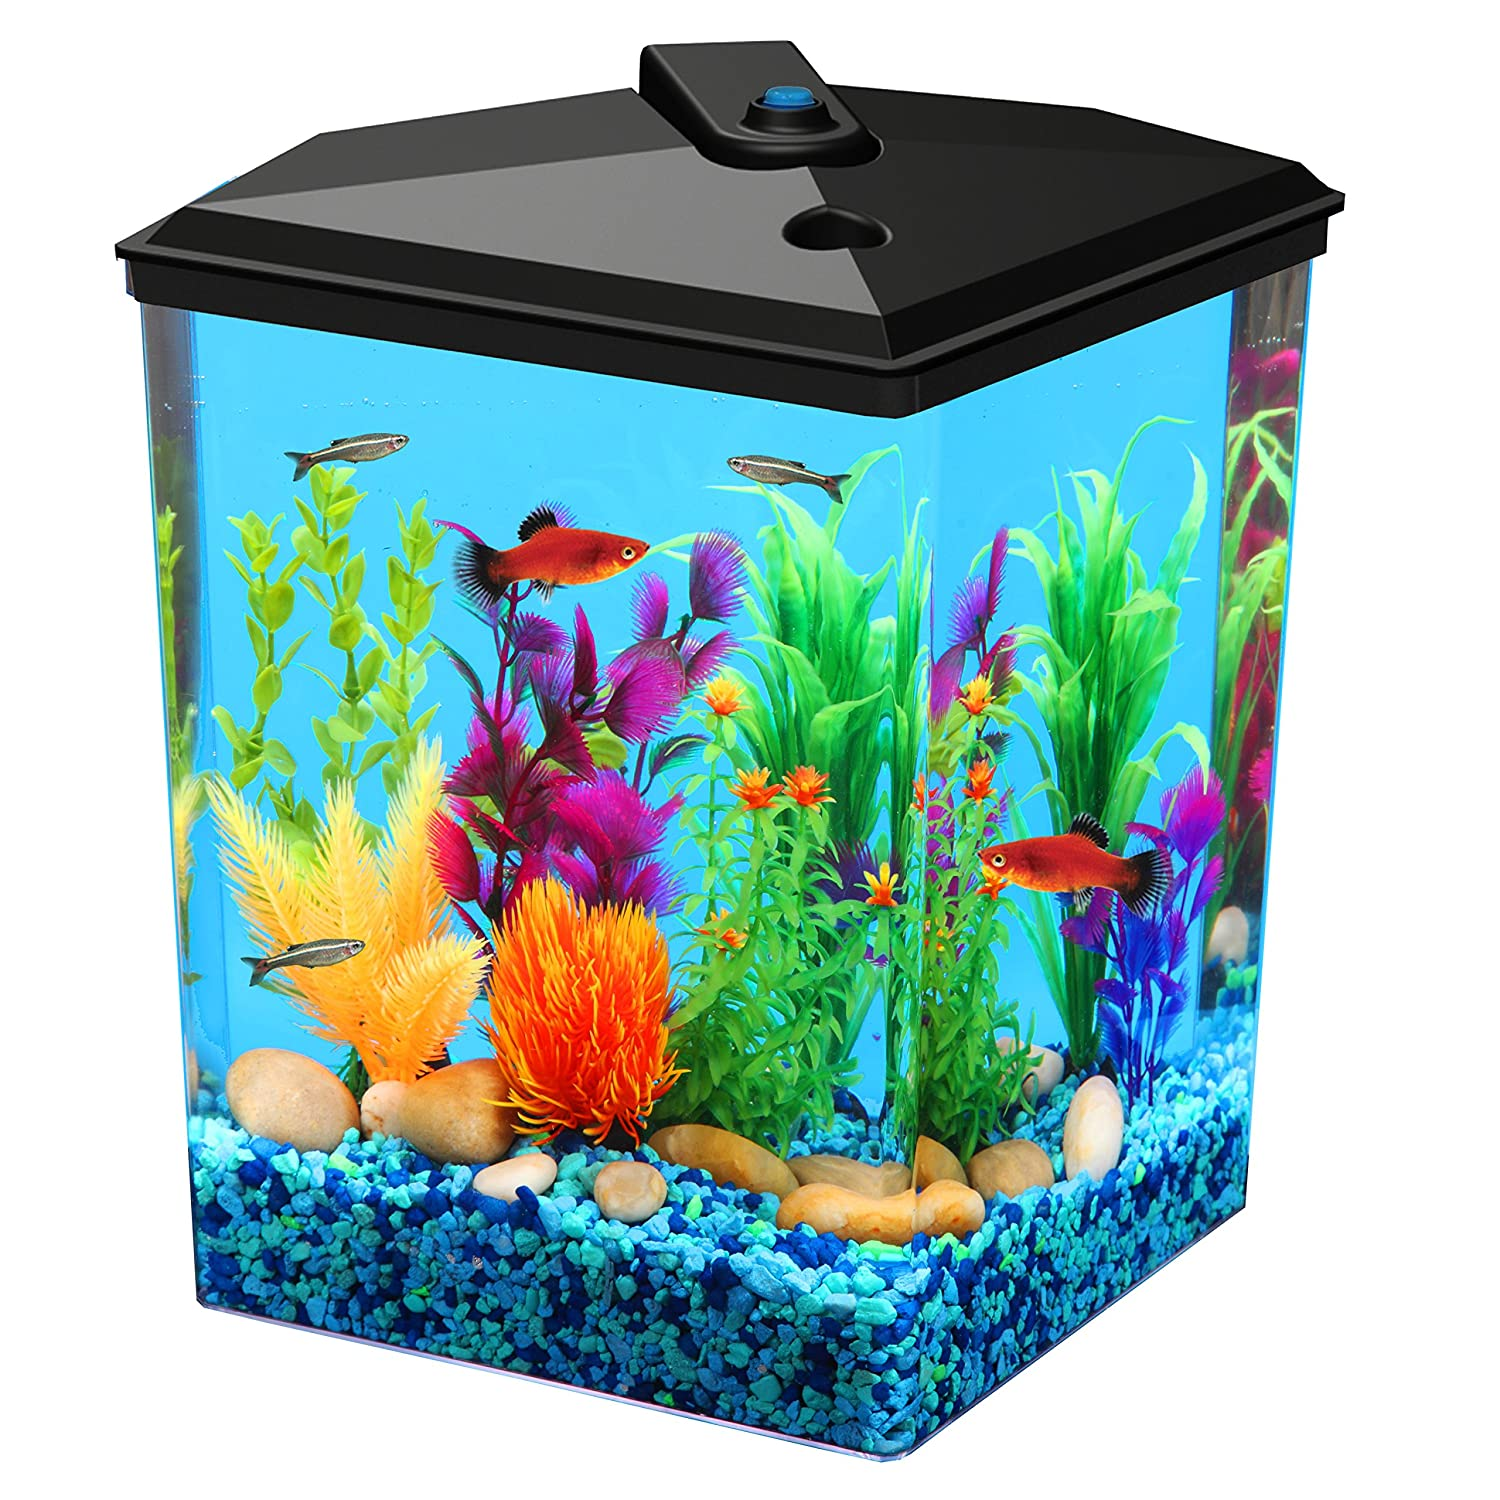 Amazon Koller Products AquaView 2 5 Gallon Fish Tank with LED